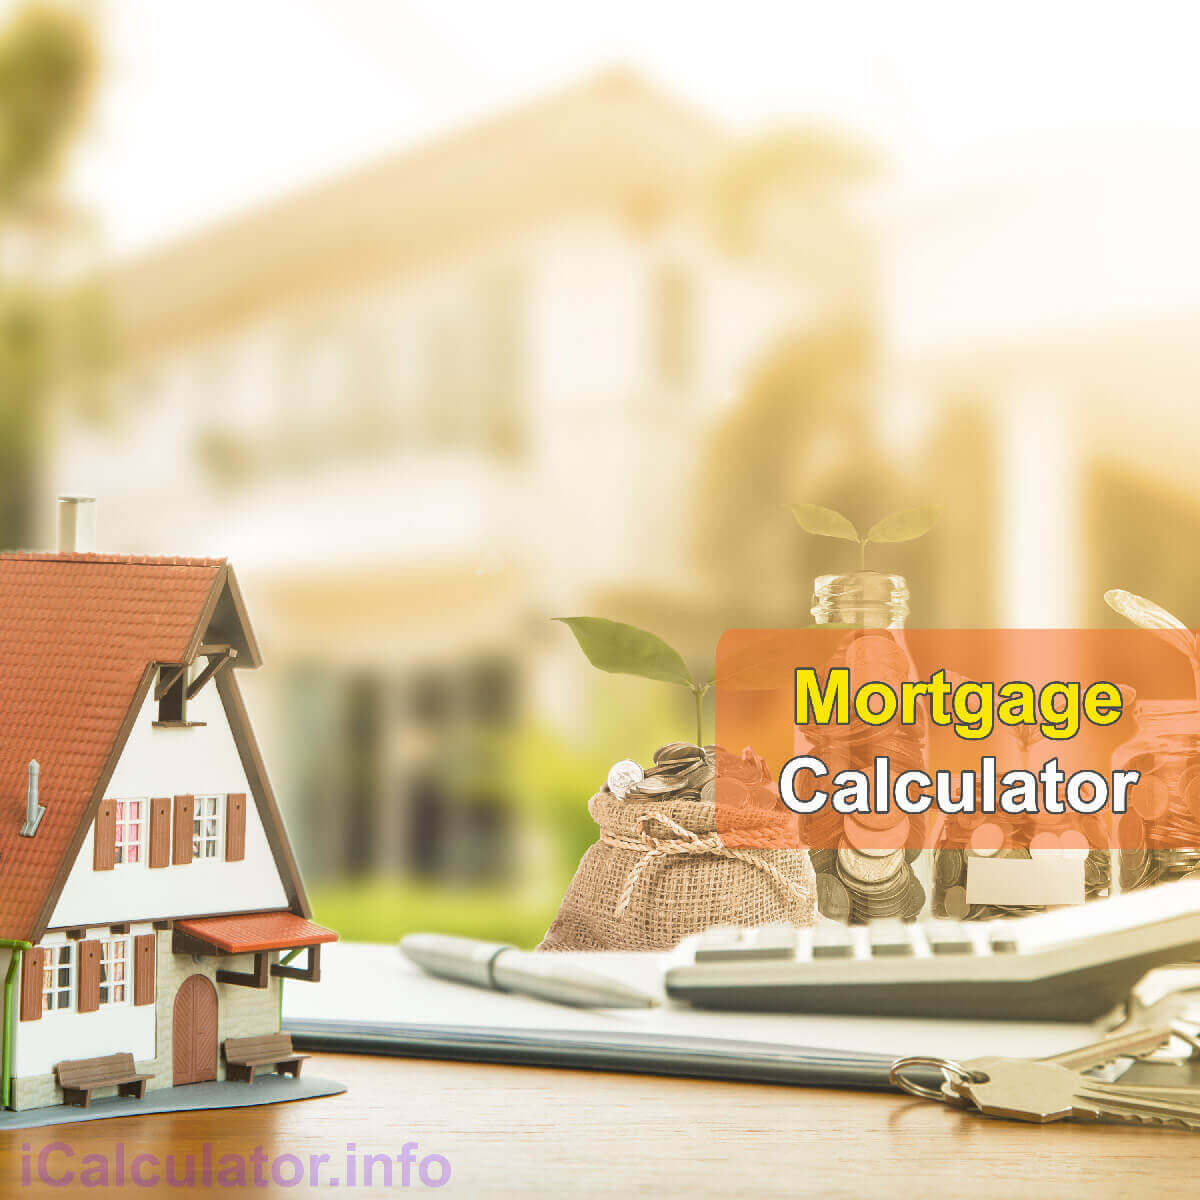 Mortgage Calculator. This image shows a beautiful home for a first time buyer, a notepad and a calculator being used to calculate the monthly repayment amount on a £30,500.00 mortgage with a 4.7% mortgage interest rate. Alternatively, people can calculate their monthly mortgage repayments on £30,500.00 at 4.7% using the mortgage calculator by iCalculator Finance Tax Calculator